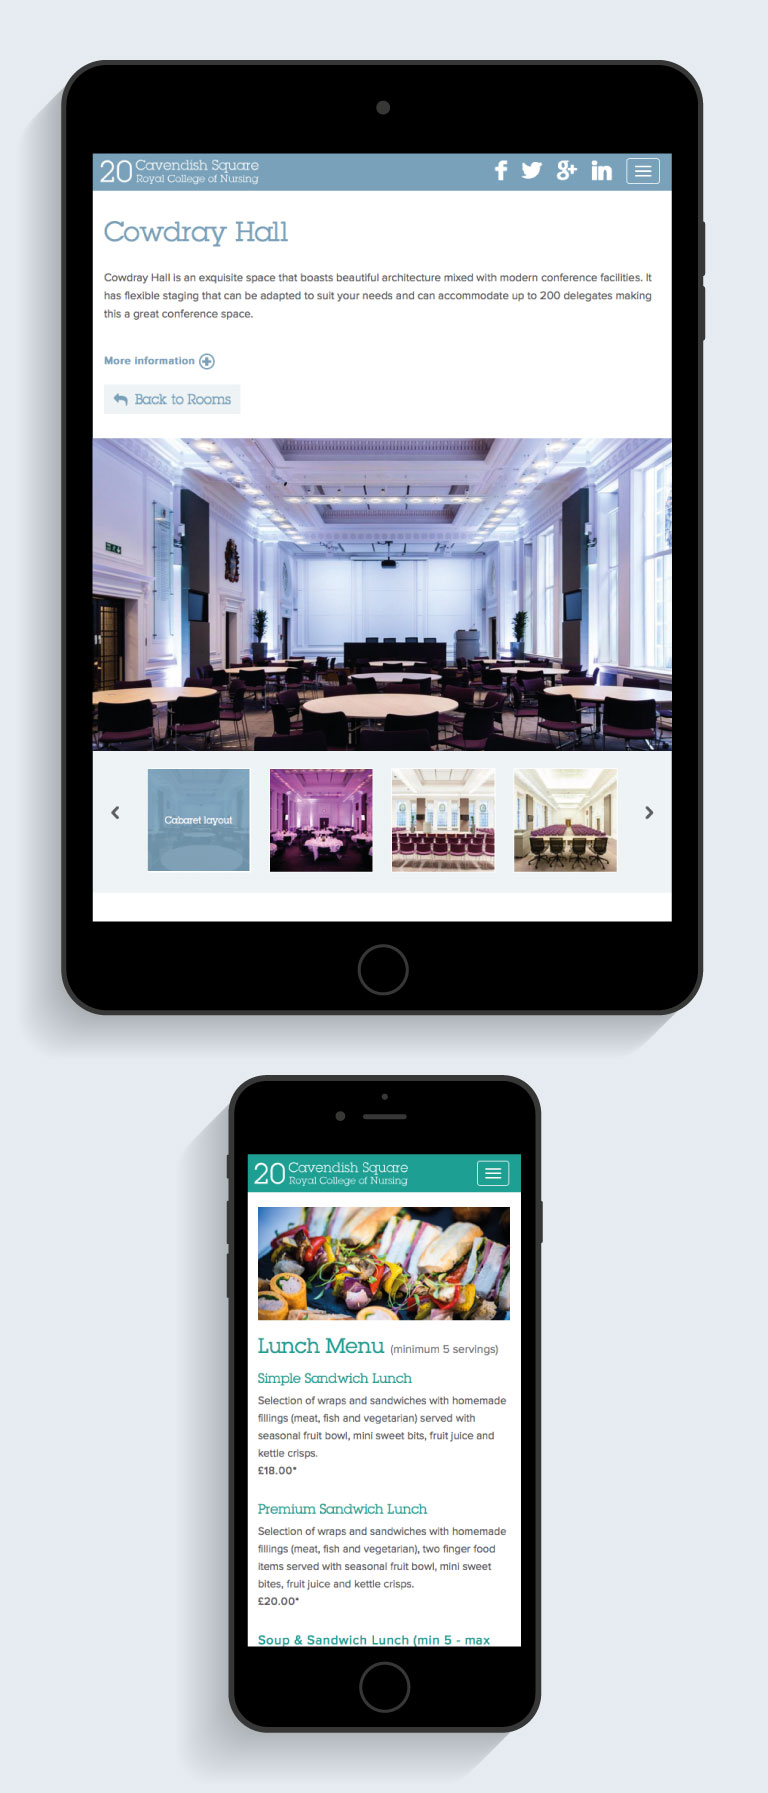 The 20 Cavendish Square website on an iPad and iPhone - mobile